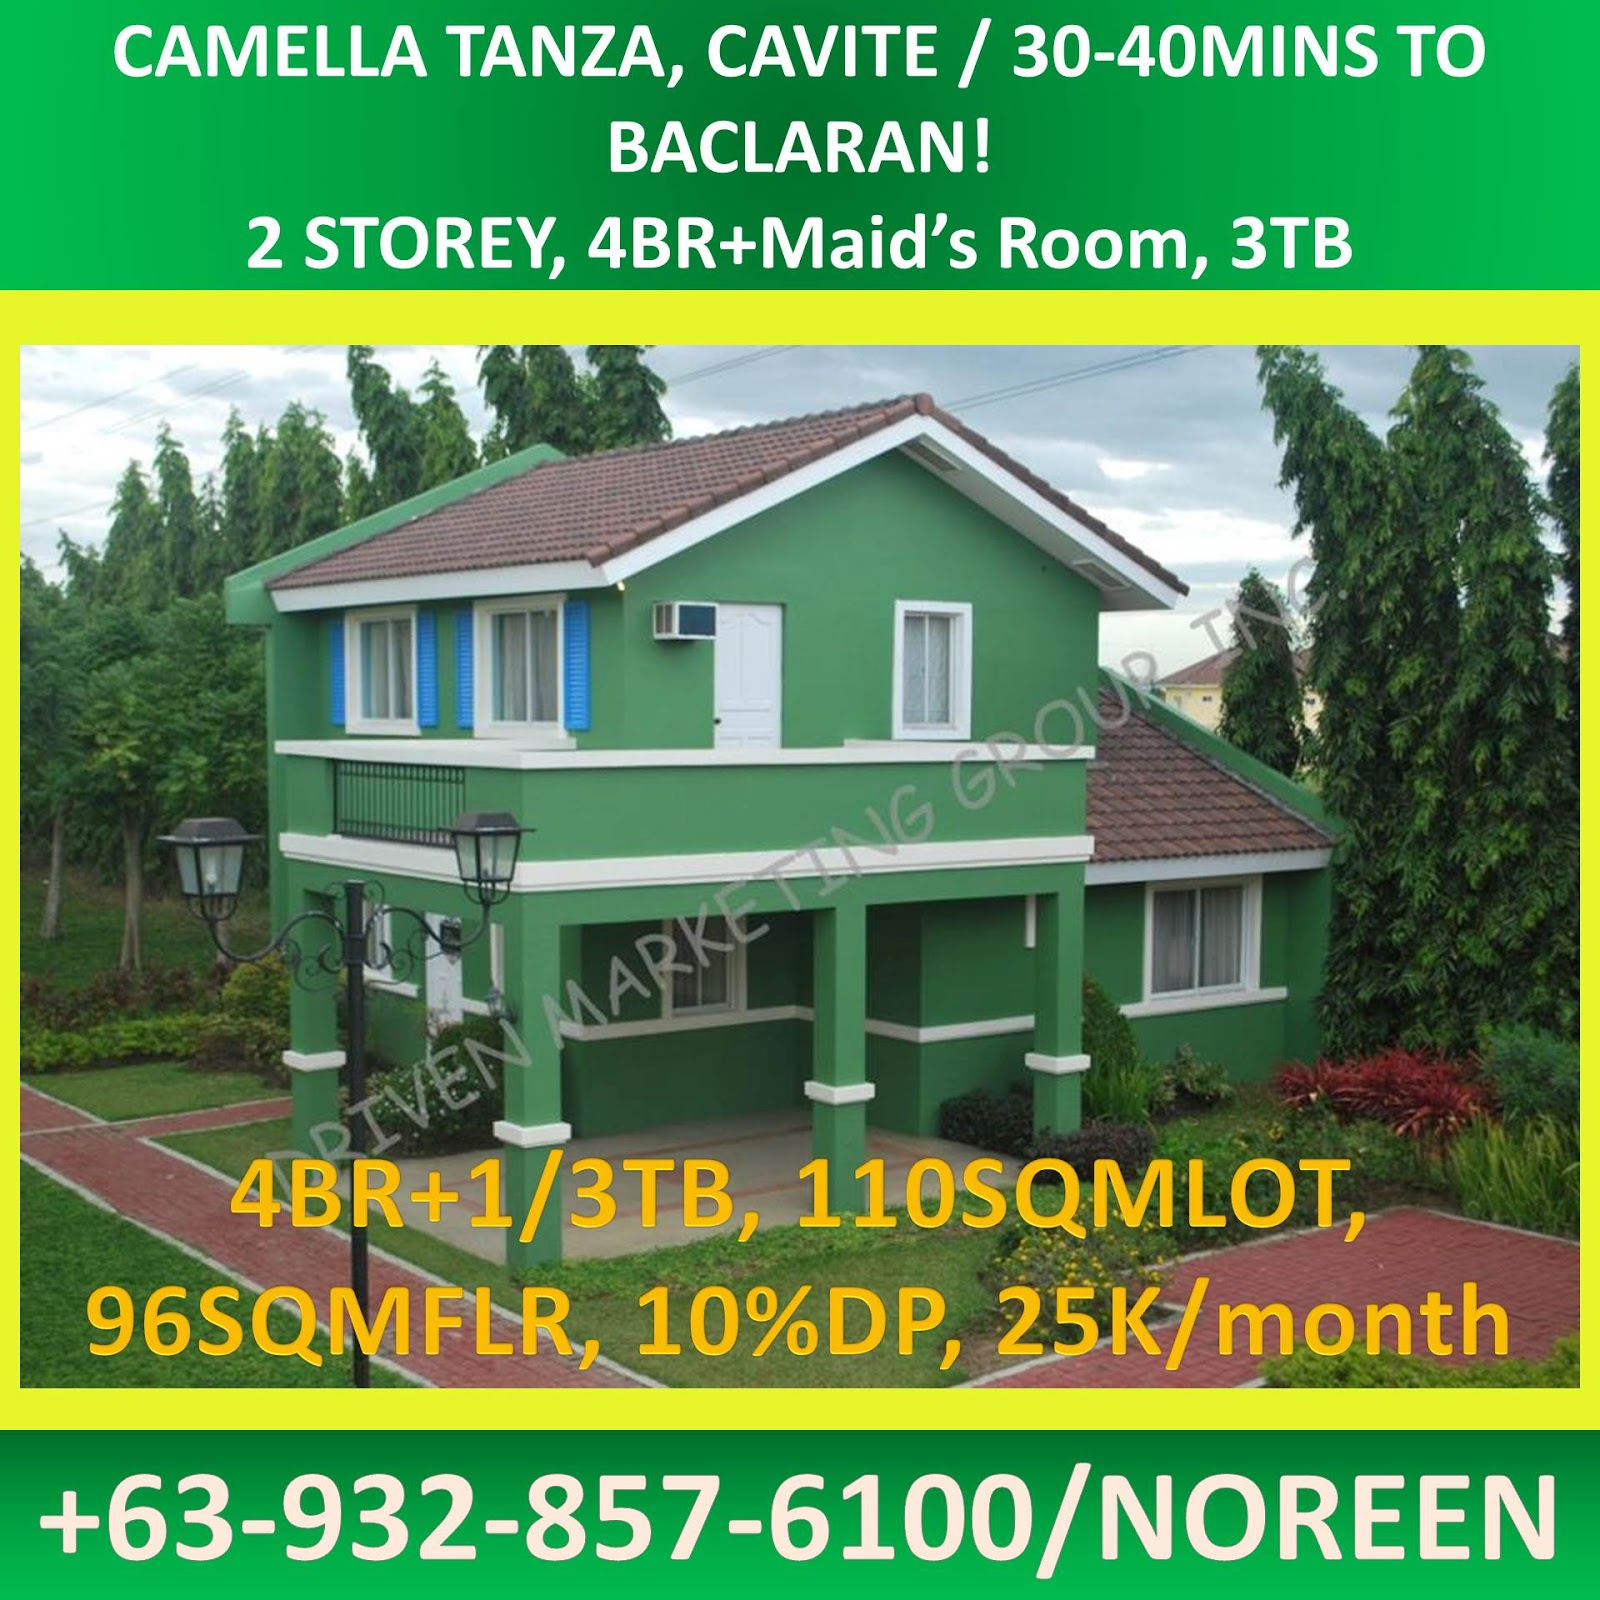 Camella homes house and lot near tagaytay city - Cheap House And Lot Single Detached Tanza Cavite Camella Vigattin Trade